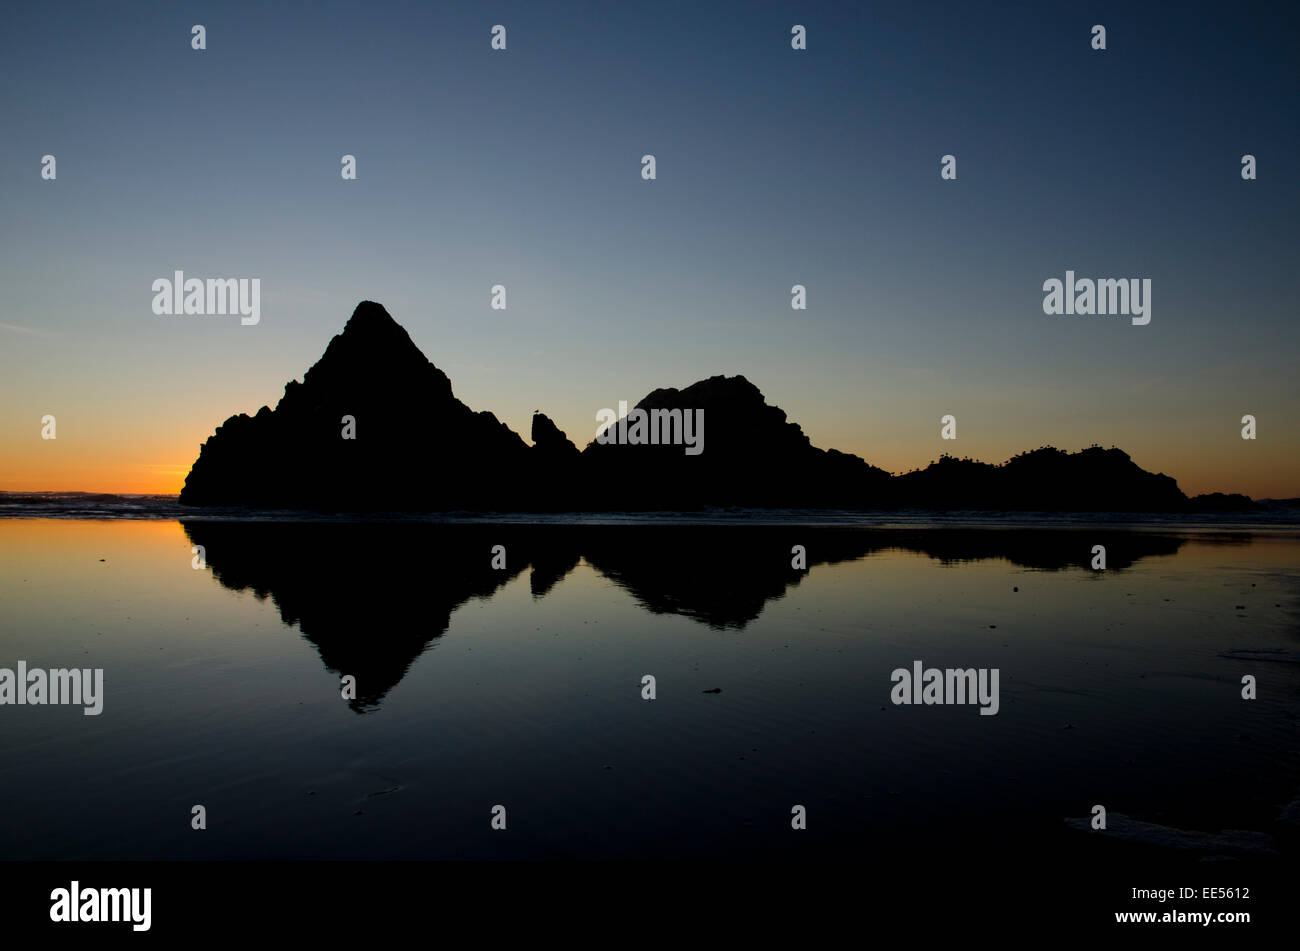 Symmetric reflexion of rocks in front of a beach during the sunset - Stock Image